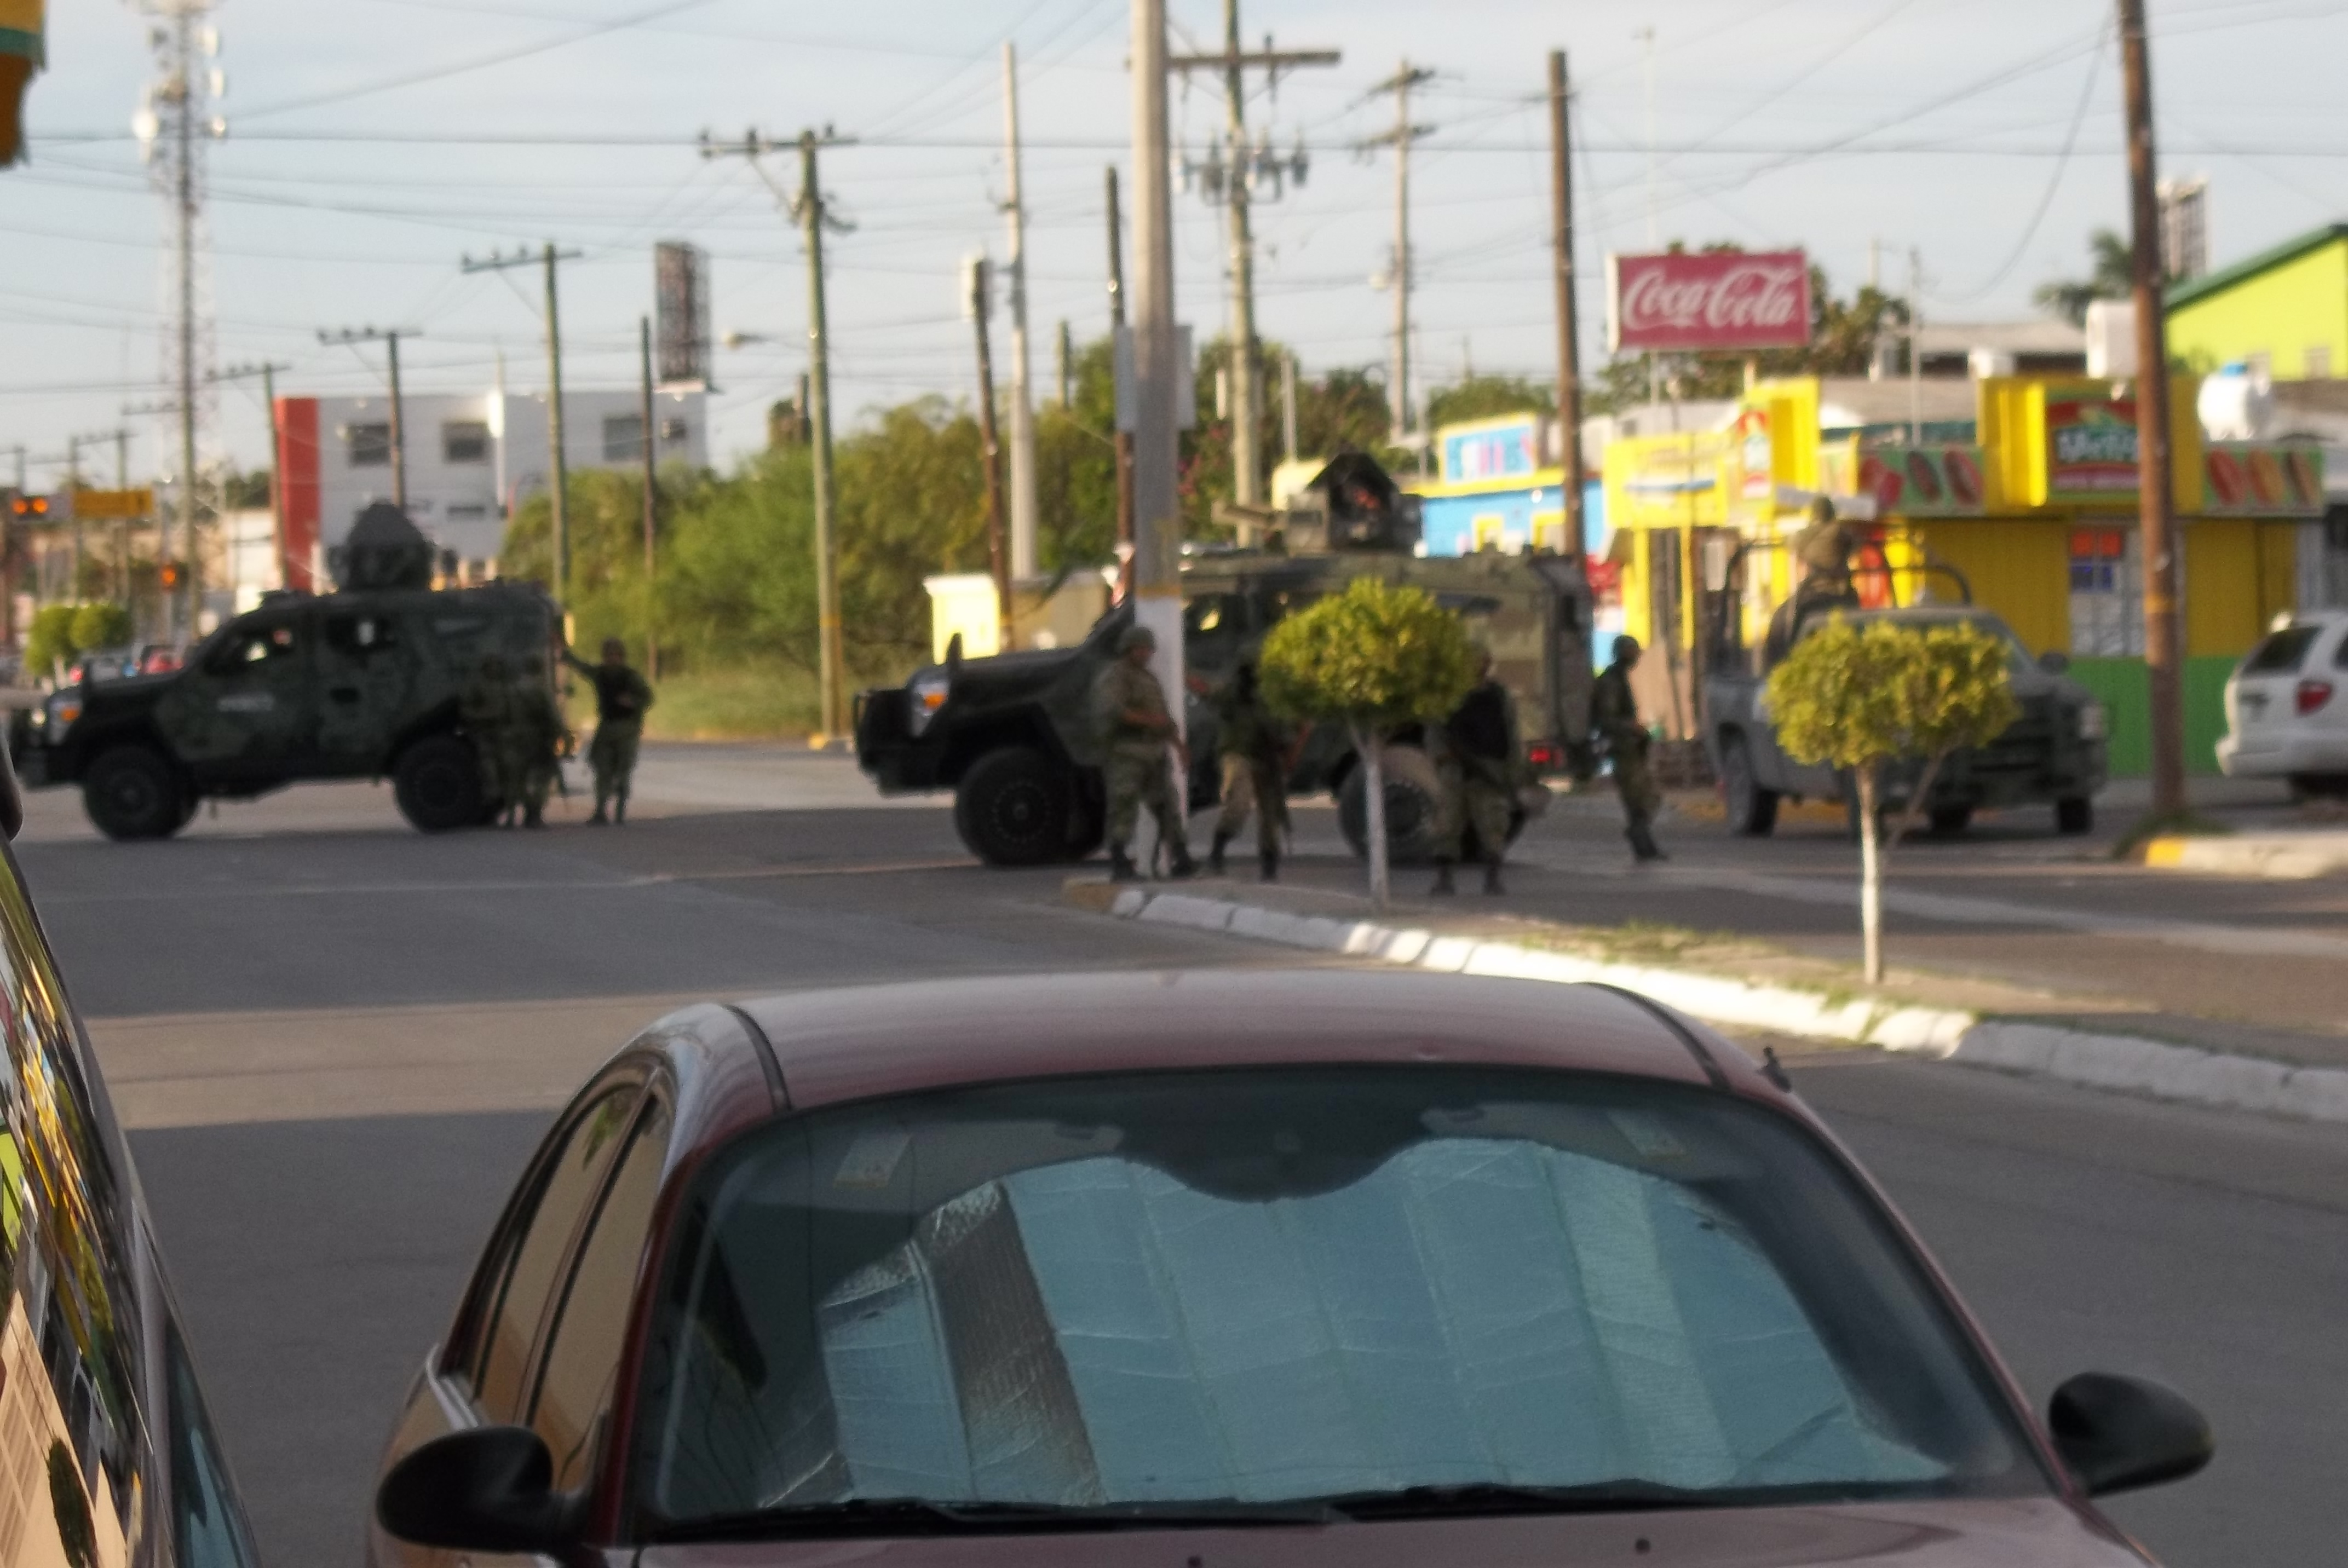 File:Militaresmexicanos-Matamoros.JPG - Wikipedia, the free ...